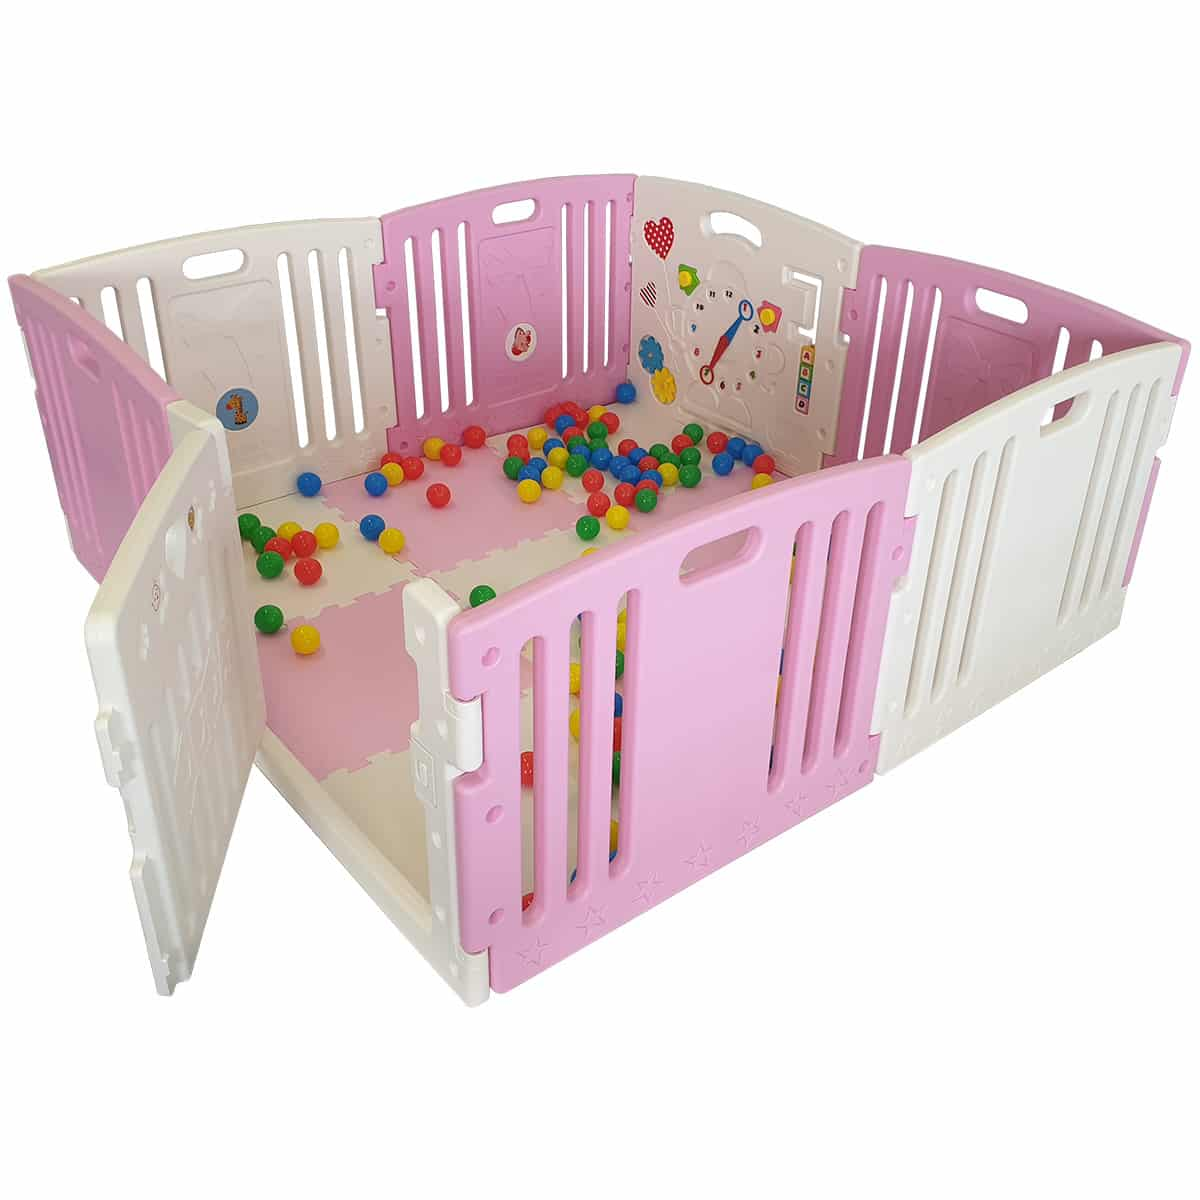 All Stars DUO pink baby playpen complete with playballs and play mats